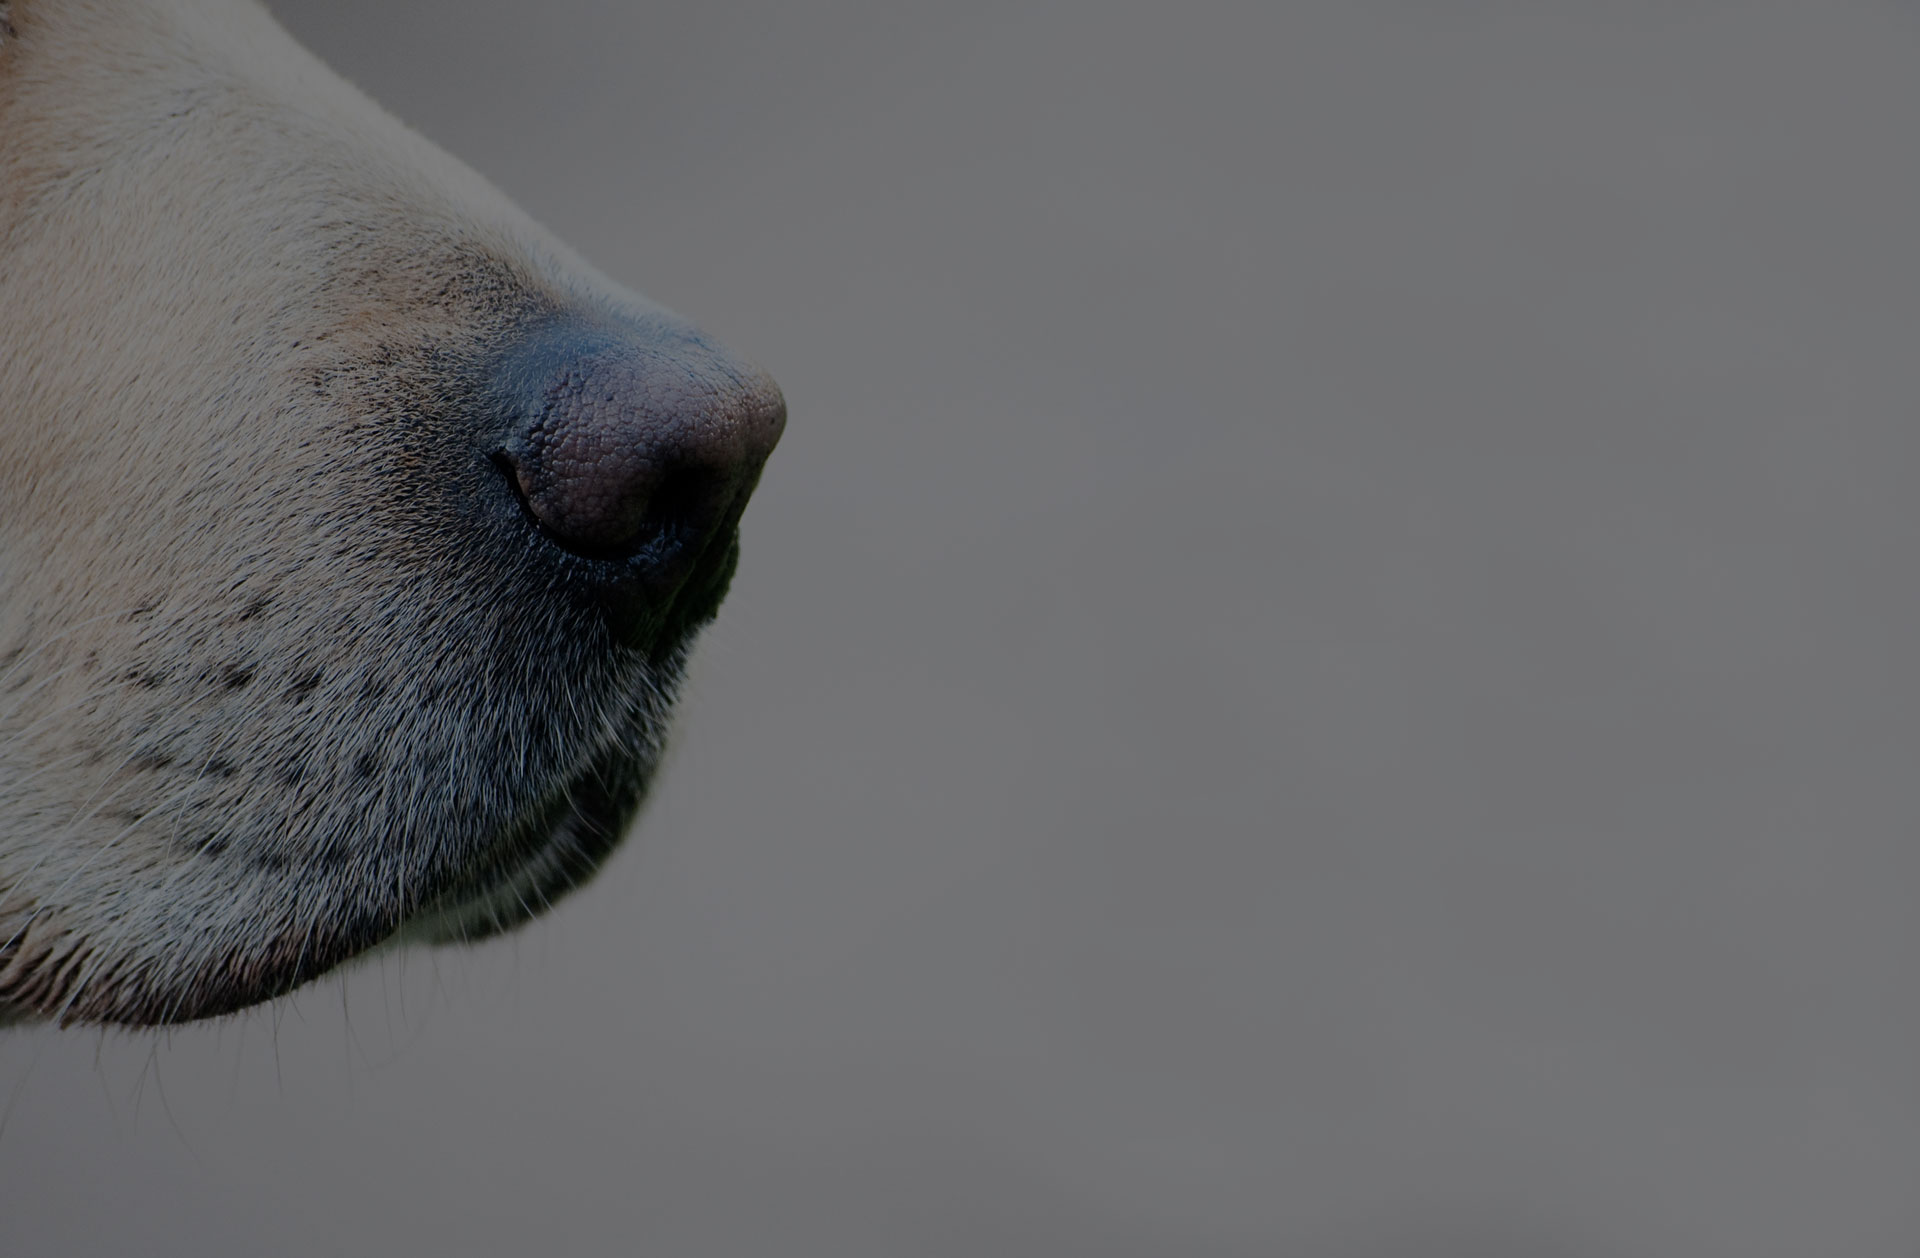 Close up of a golden labrador's nose